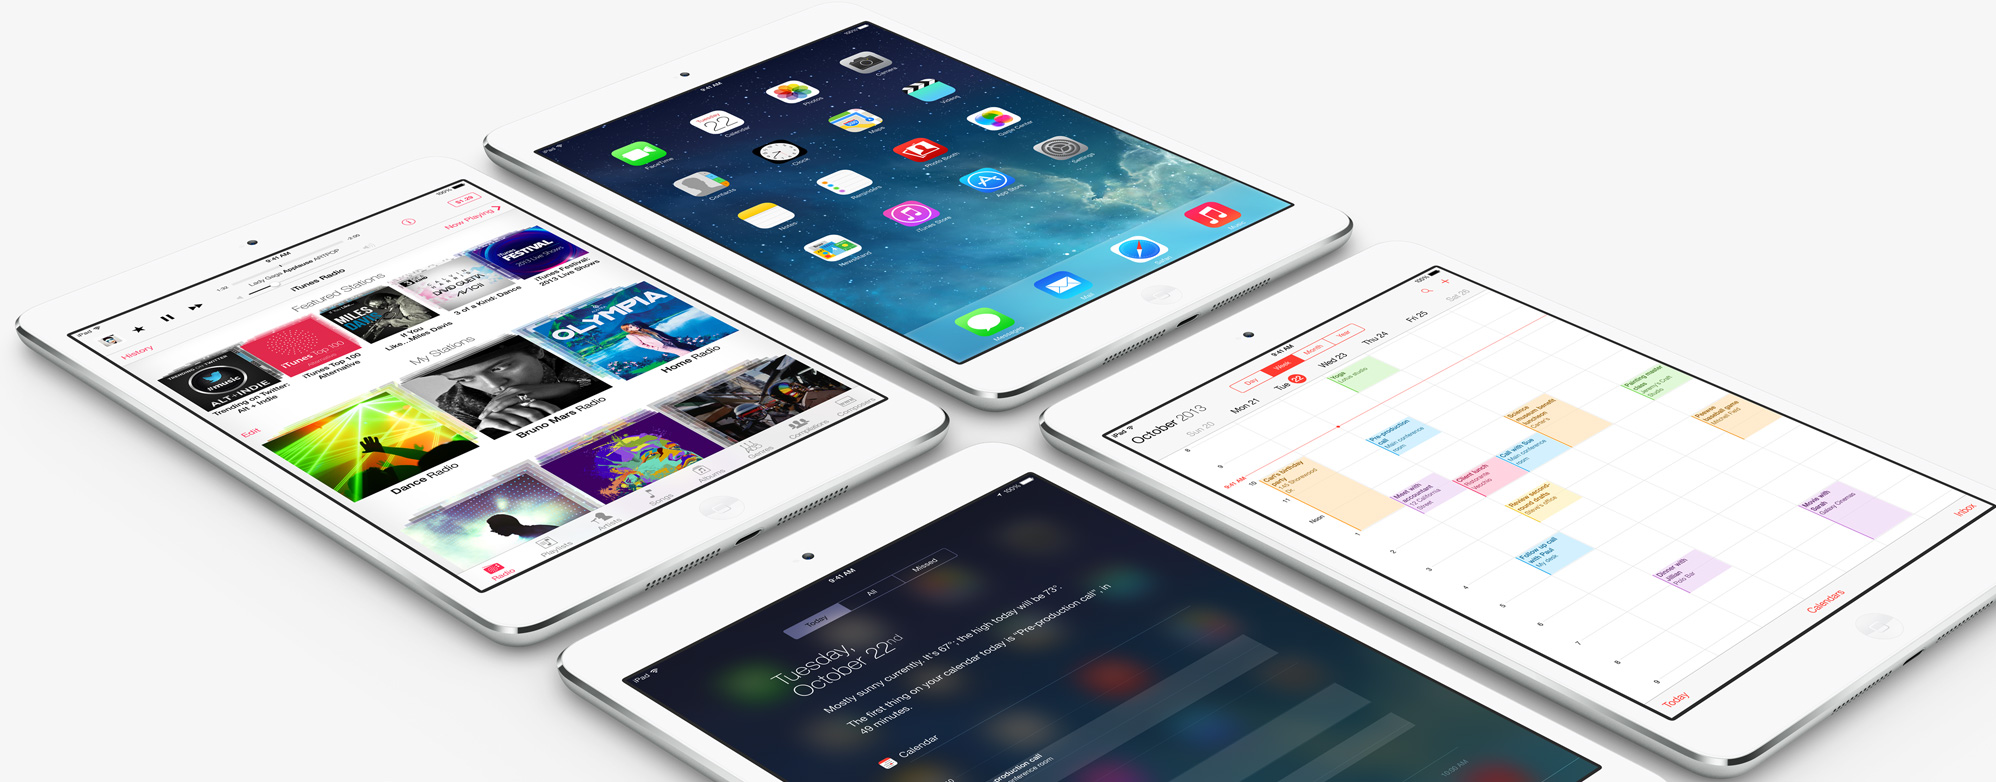 iPad point-of-sale maker introduces Bitcoin payments